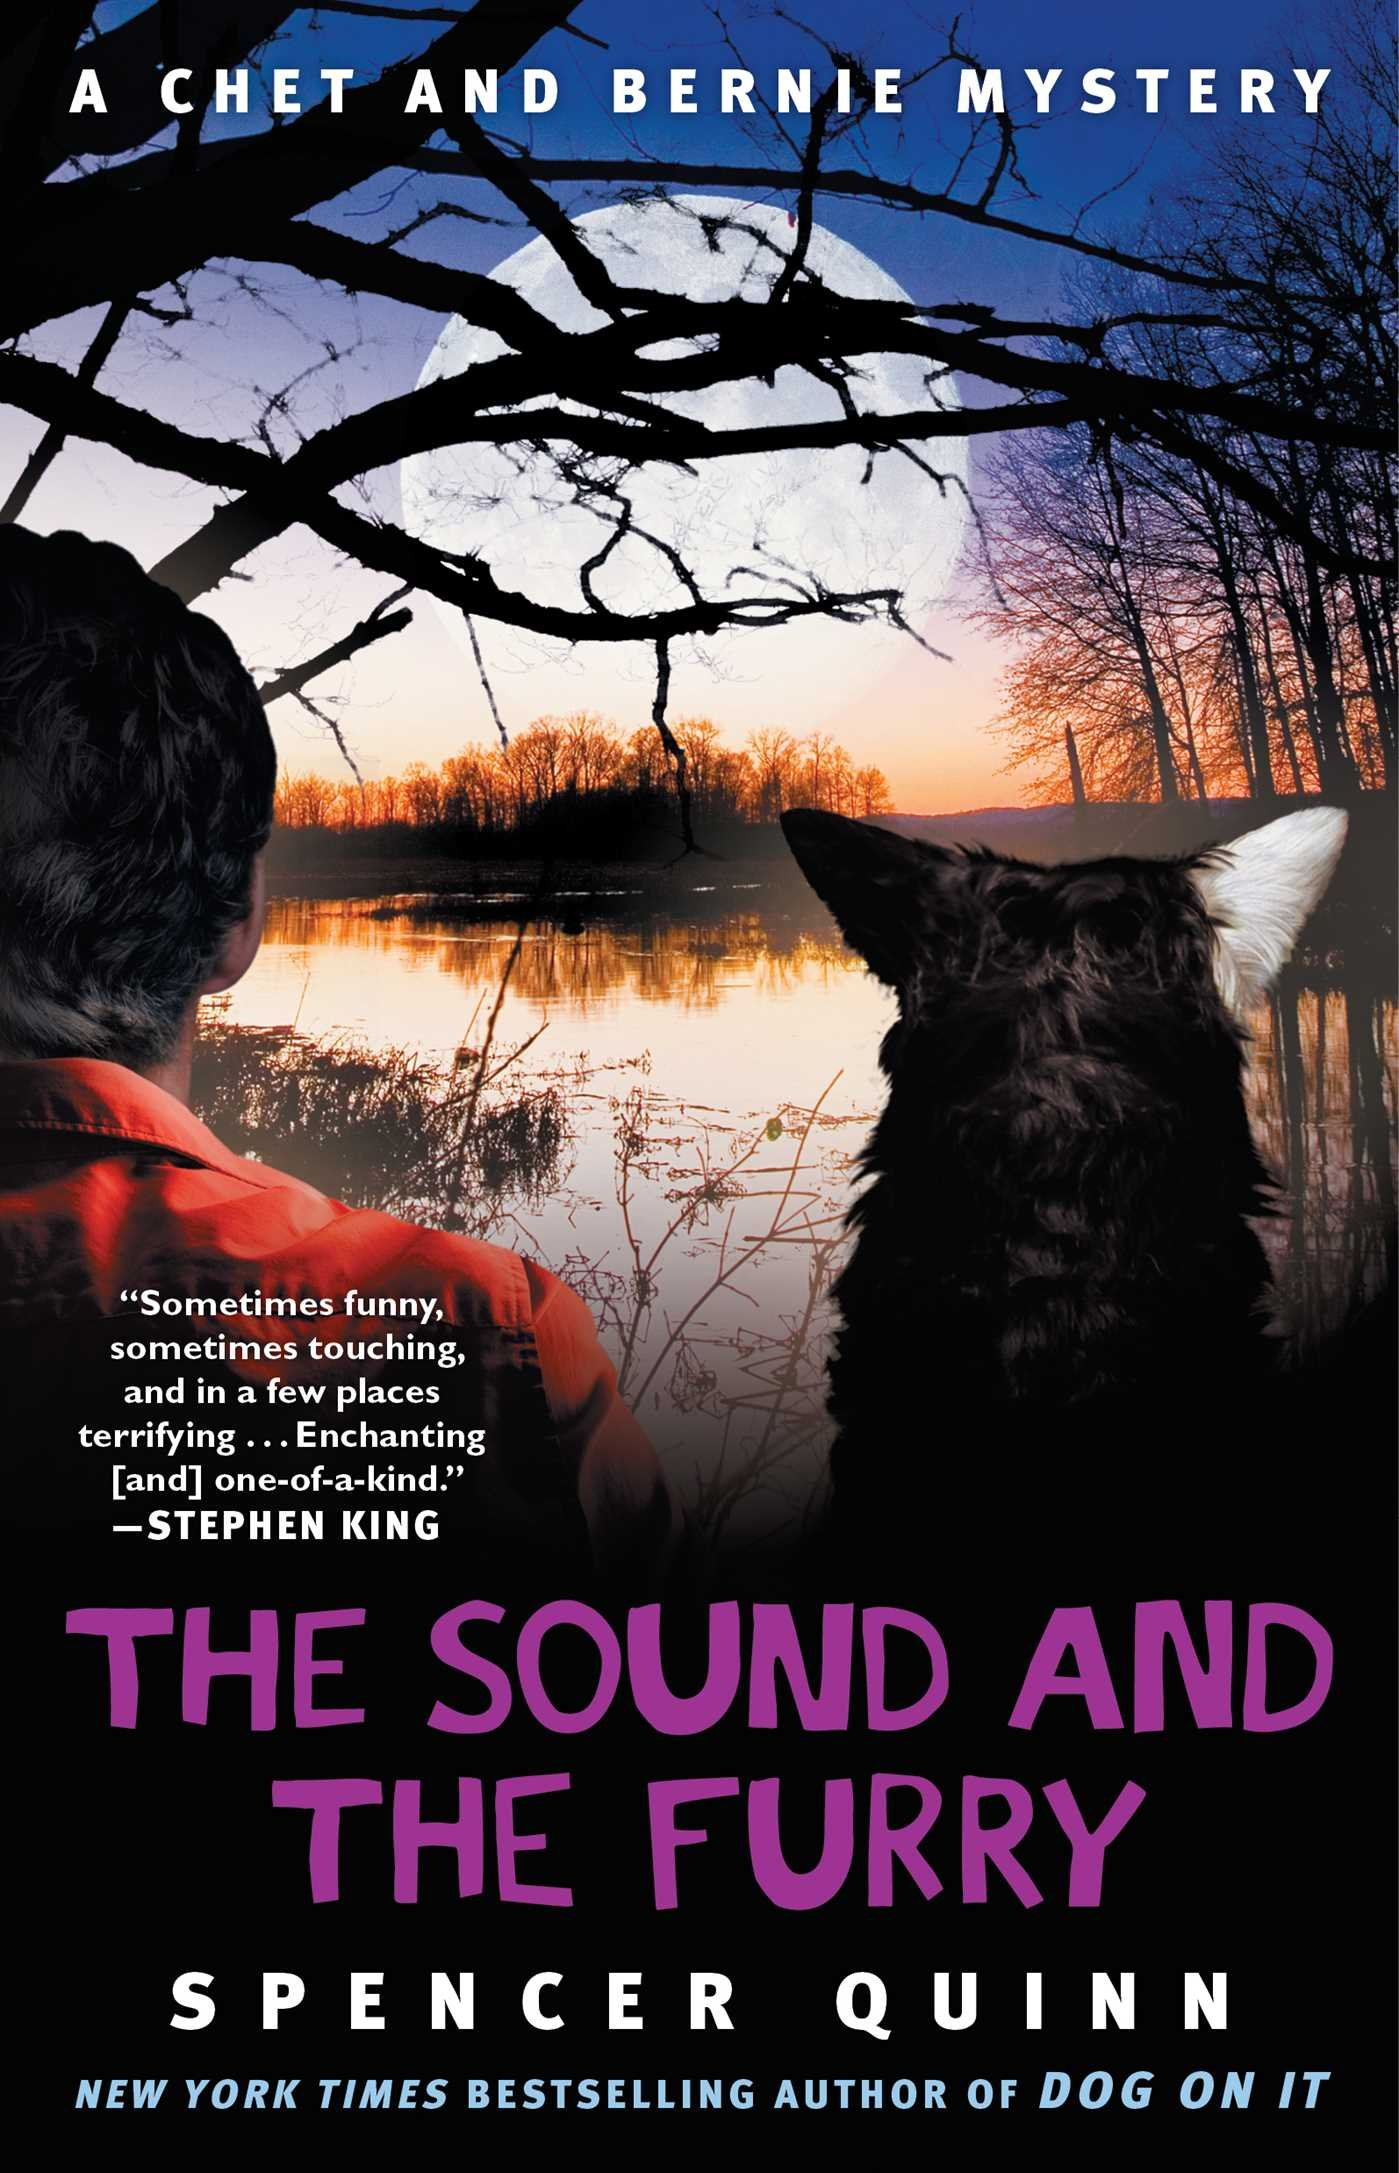 The Sound and the Furry: A Chet and Bernie Mystery (The Chet and Bernie Mystery Series) pdf epub